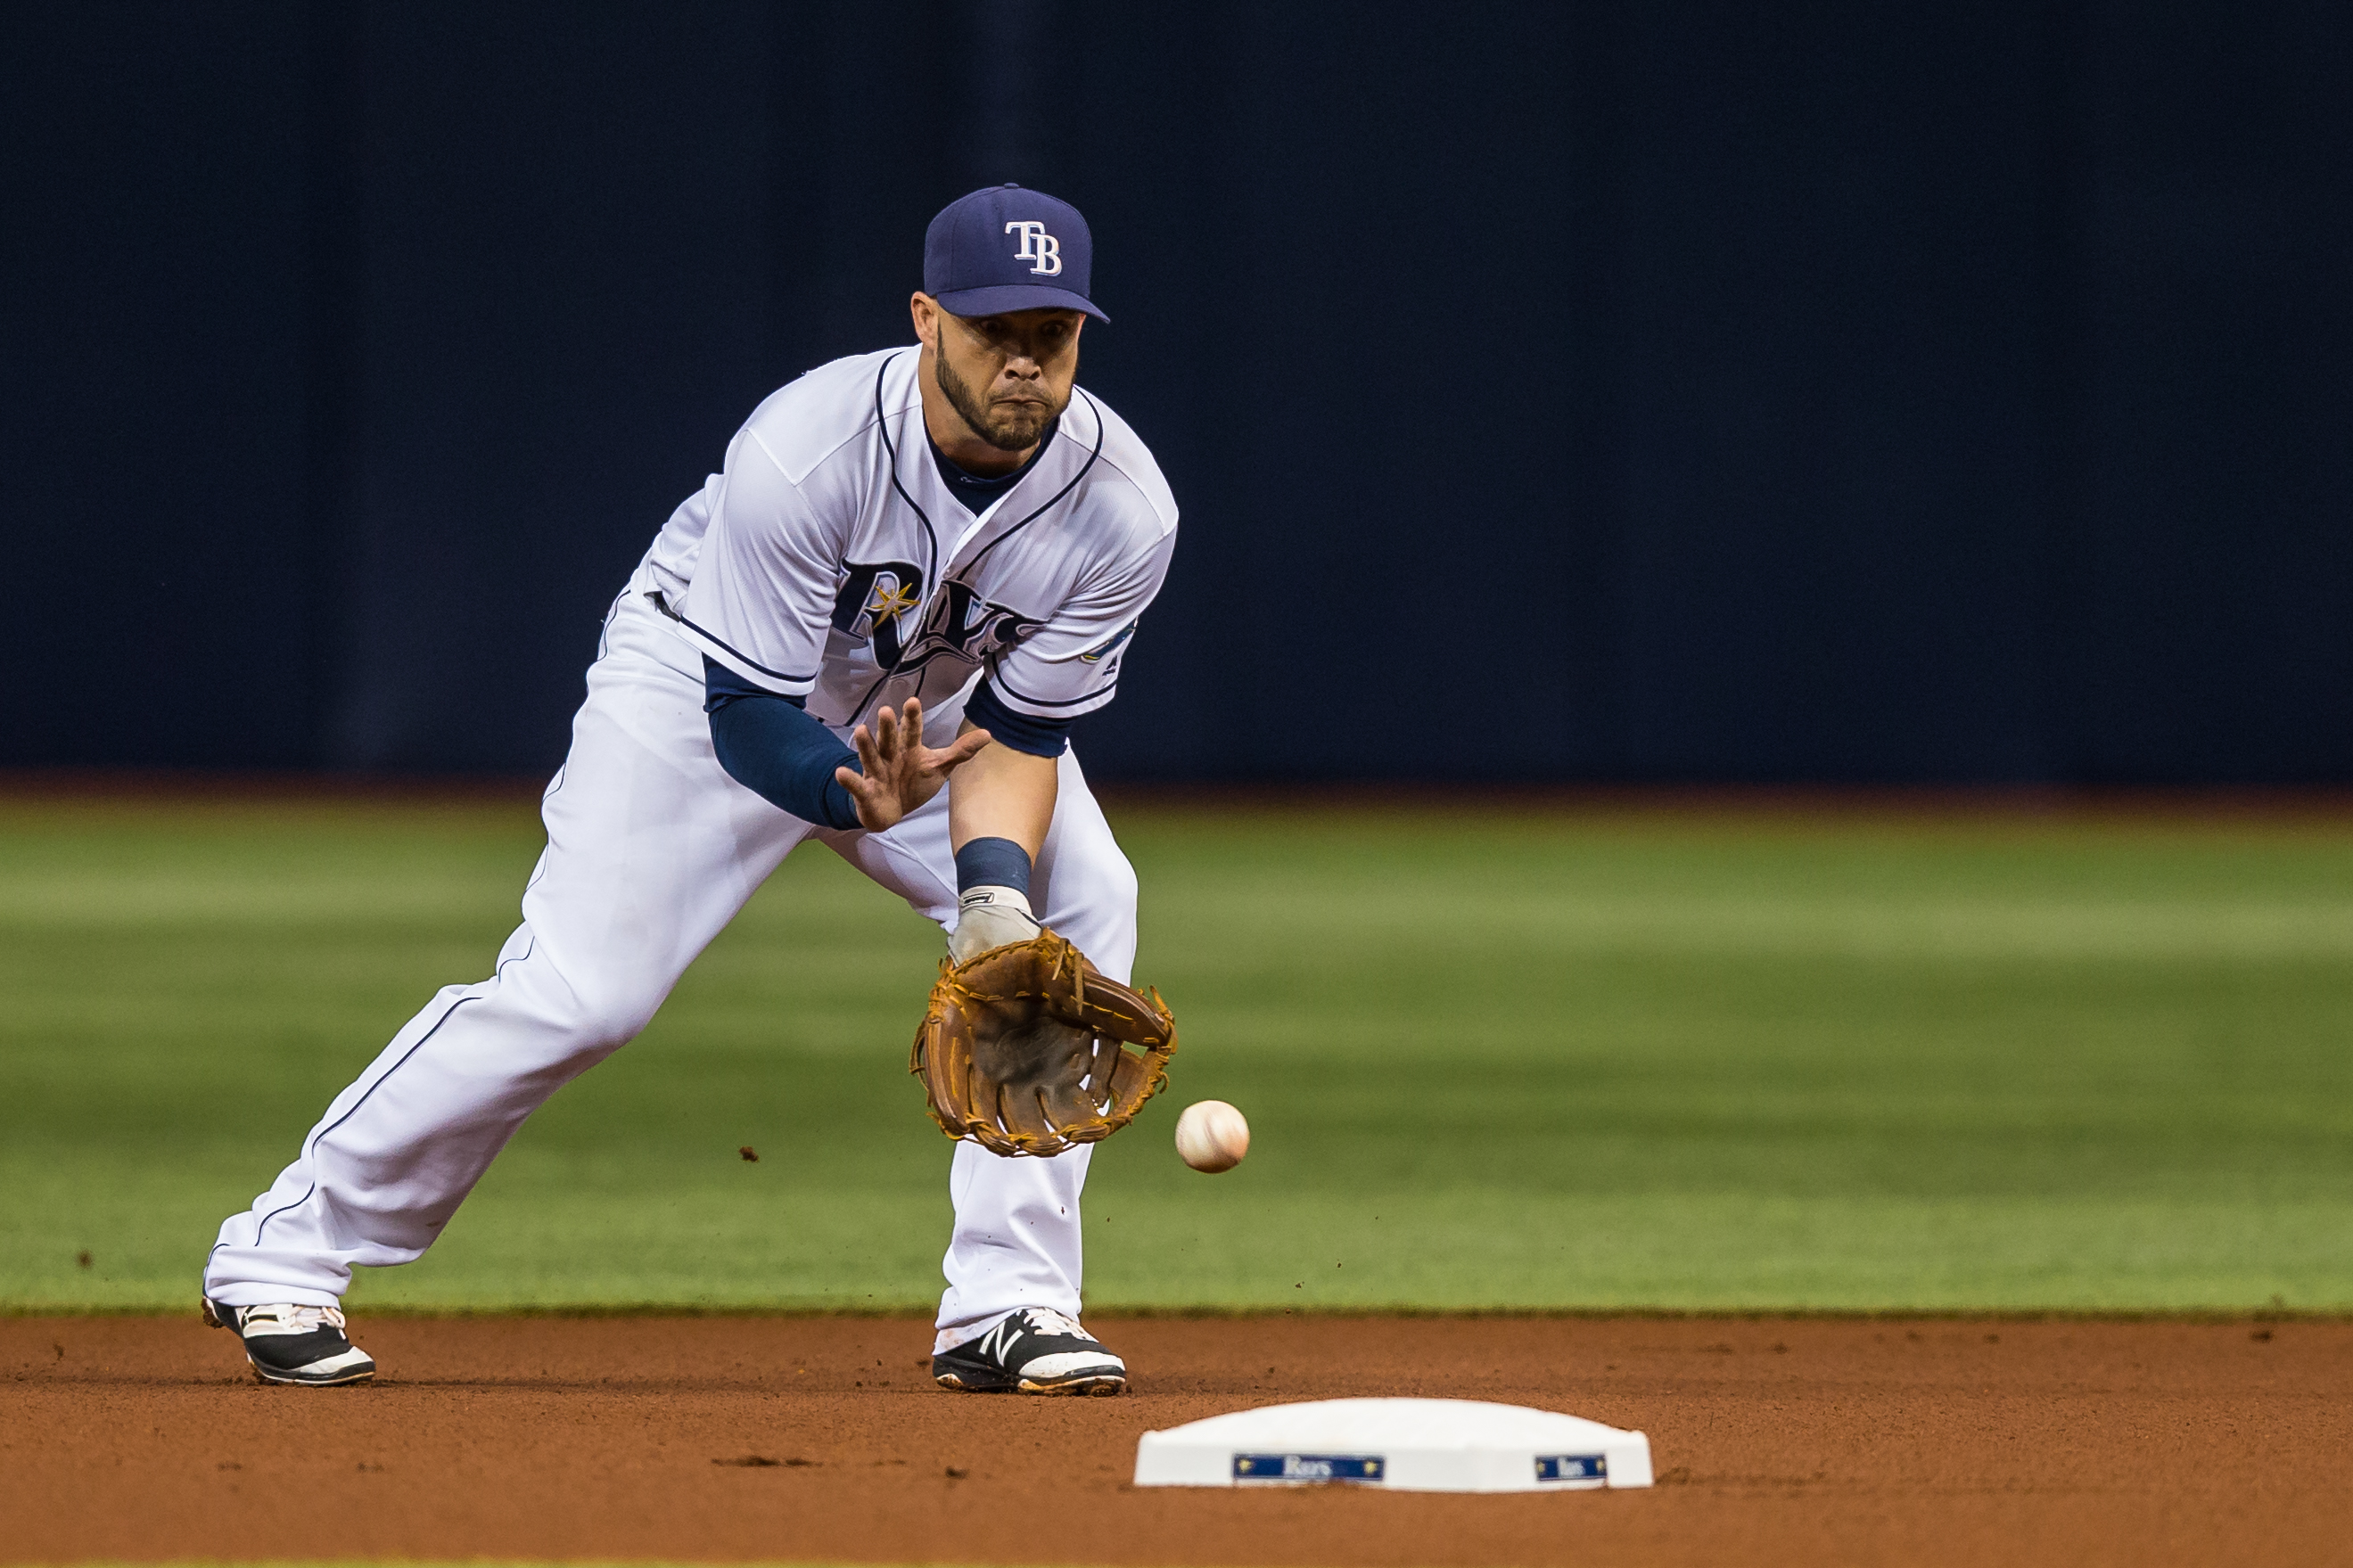 Pearce fields a ground ball for Rays./TRAVIS PENDERGRASS.